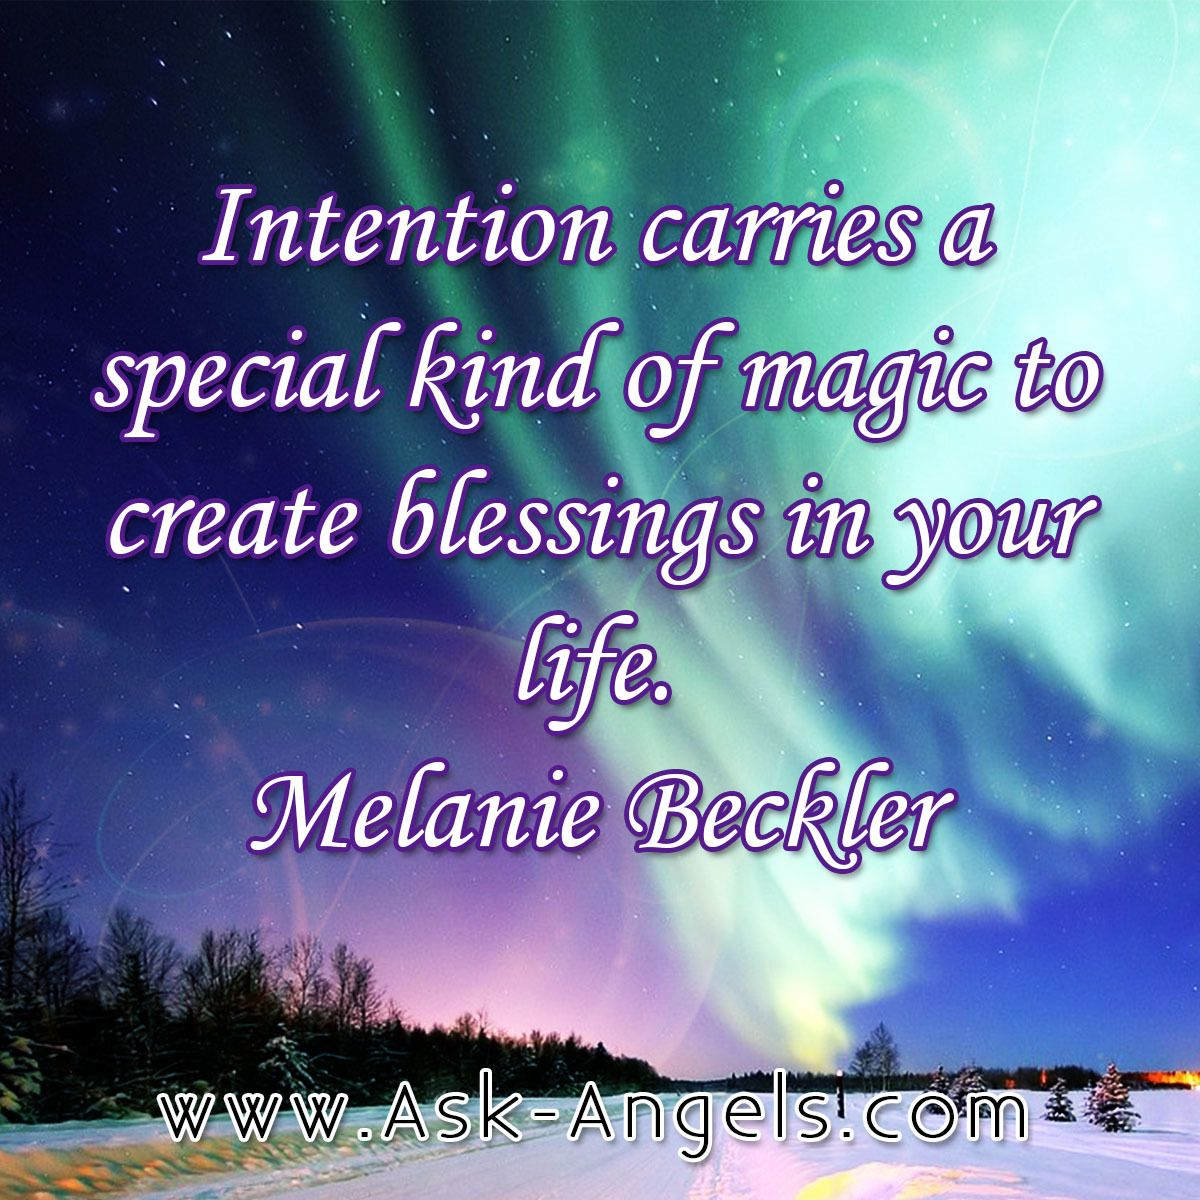 Ask Angels Com Helping You Experience More Love Light In Your Life Inspirational Wisdom Quotes Spiritual Thoughts Spiritual Quotes